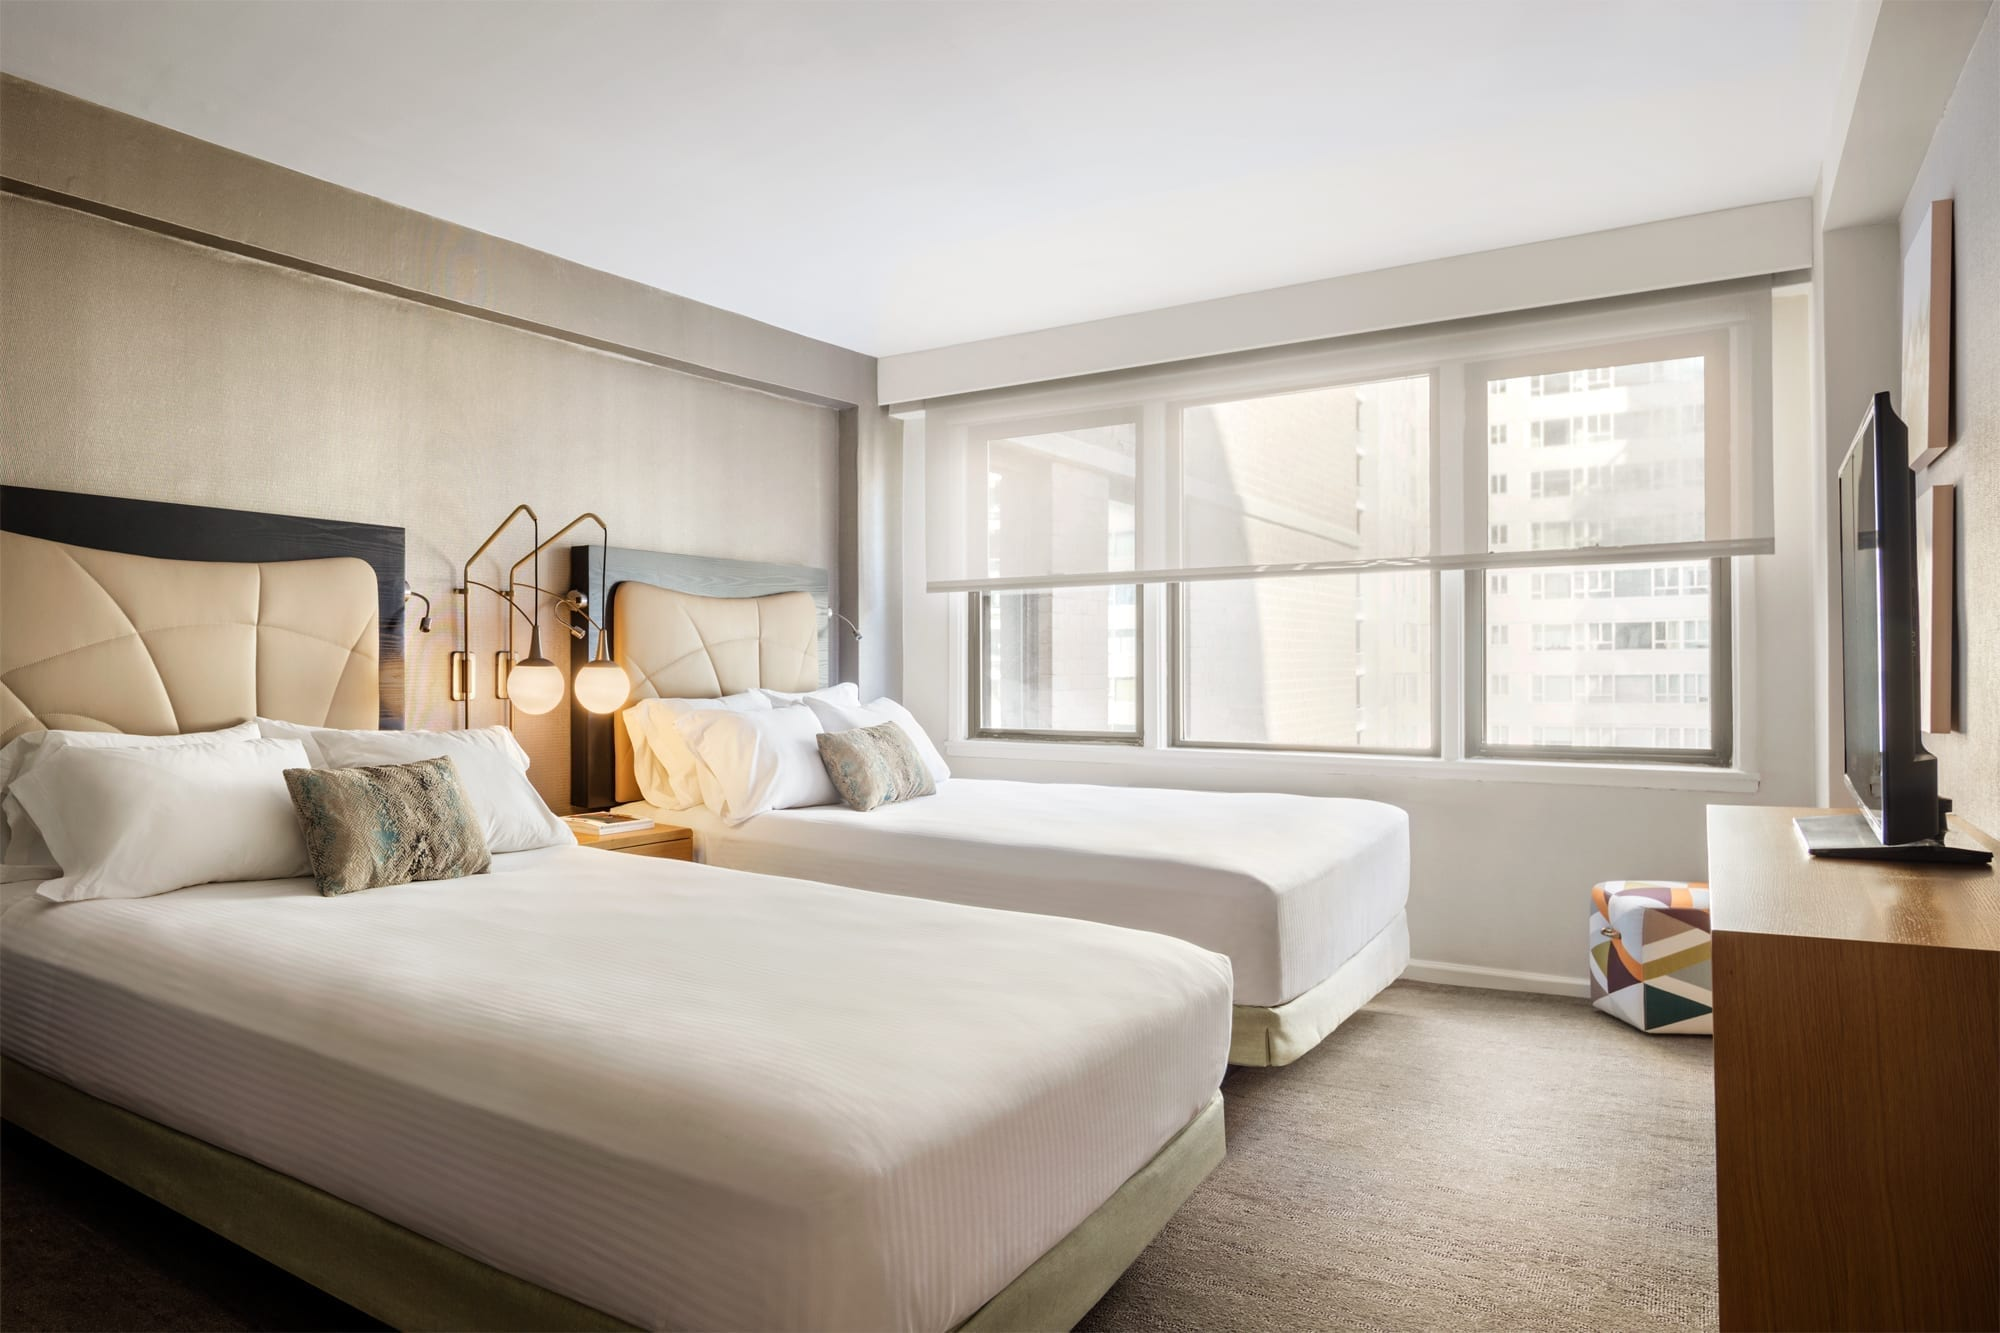 One of the bedrooms inside Affinia Gardens' One or Two Bedroom Suite. Two queen beds are placed against a wall, with a nightstand in between. The blinds are half drawn, bringing in light from the outside.